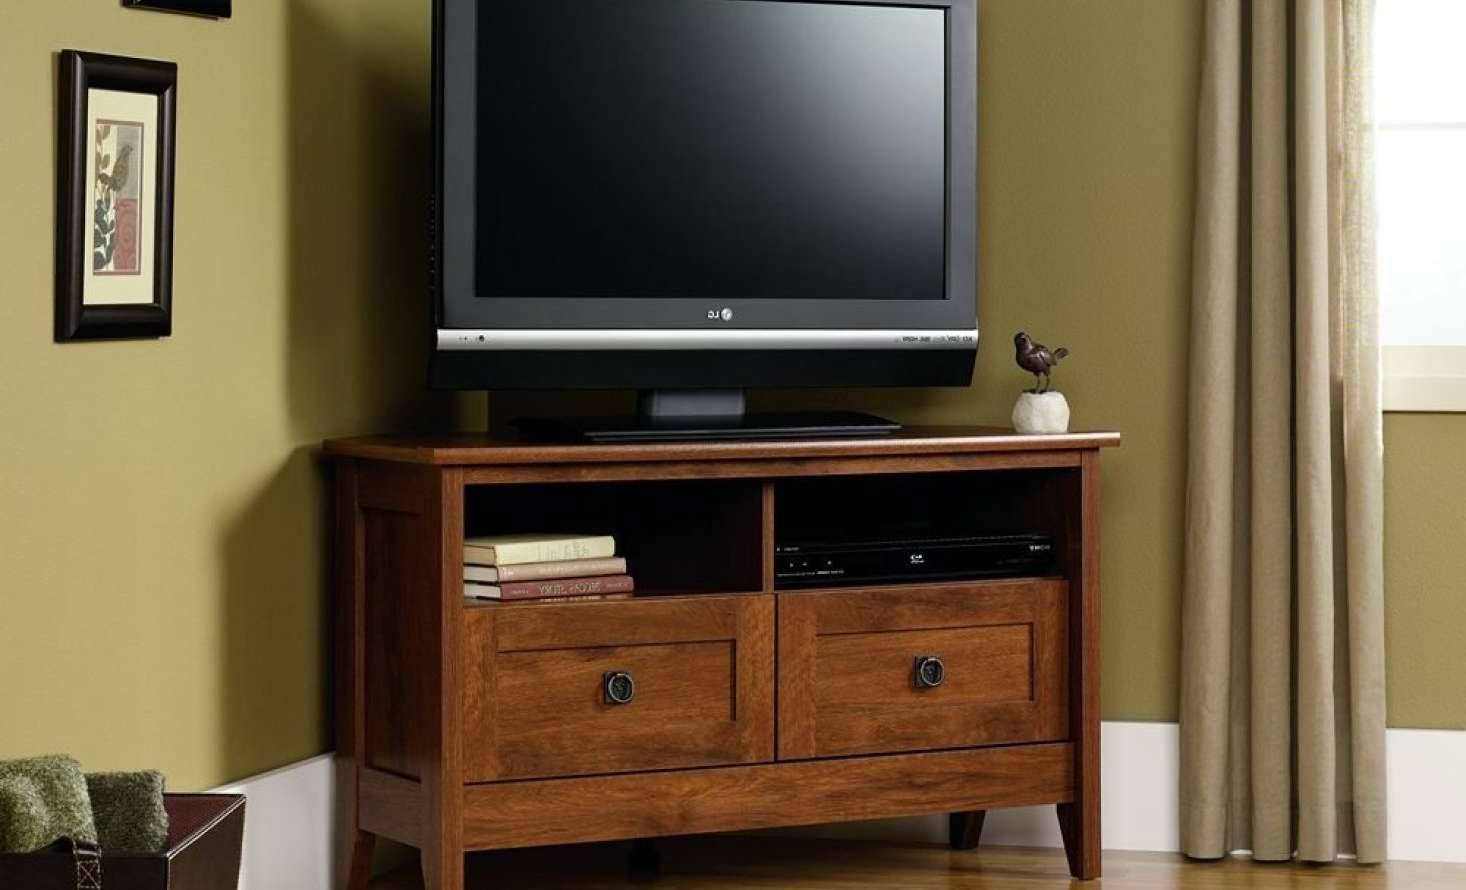 Tv : Astounding Corner Tv Stands For 46 Inch Flat Screen Satiating For Corner Tv Stands For 46 Inch Flat Screen (View 5 of 15)